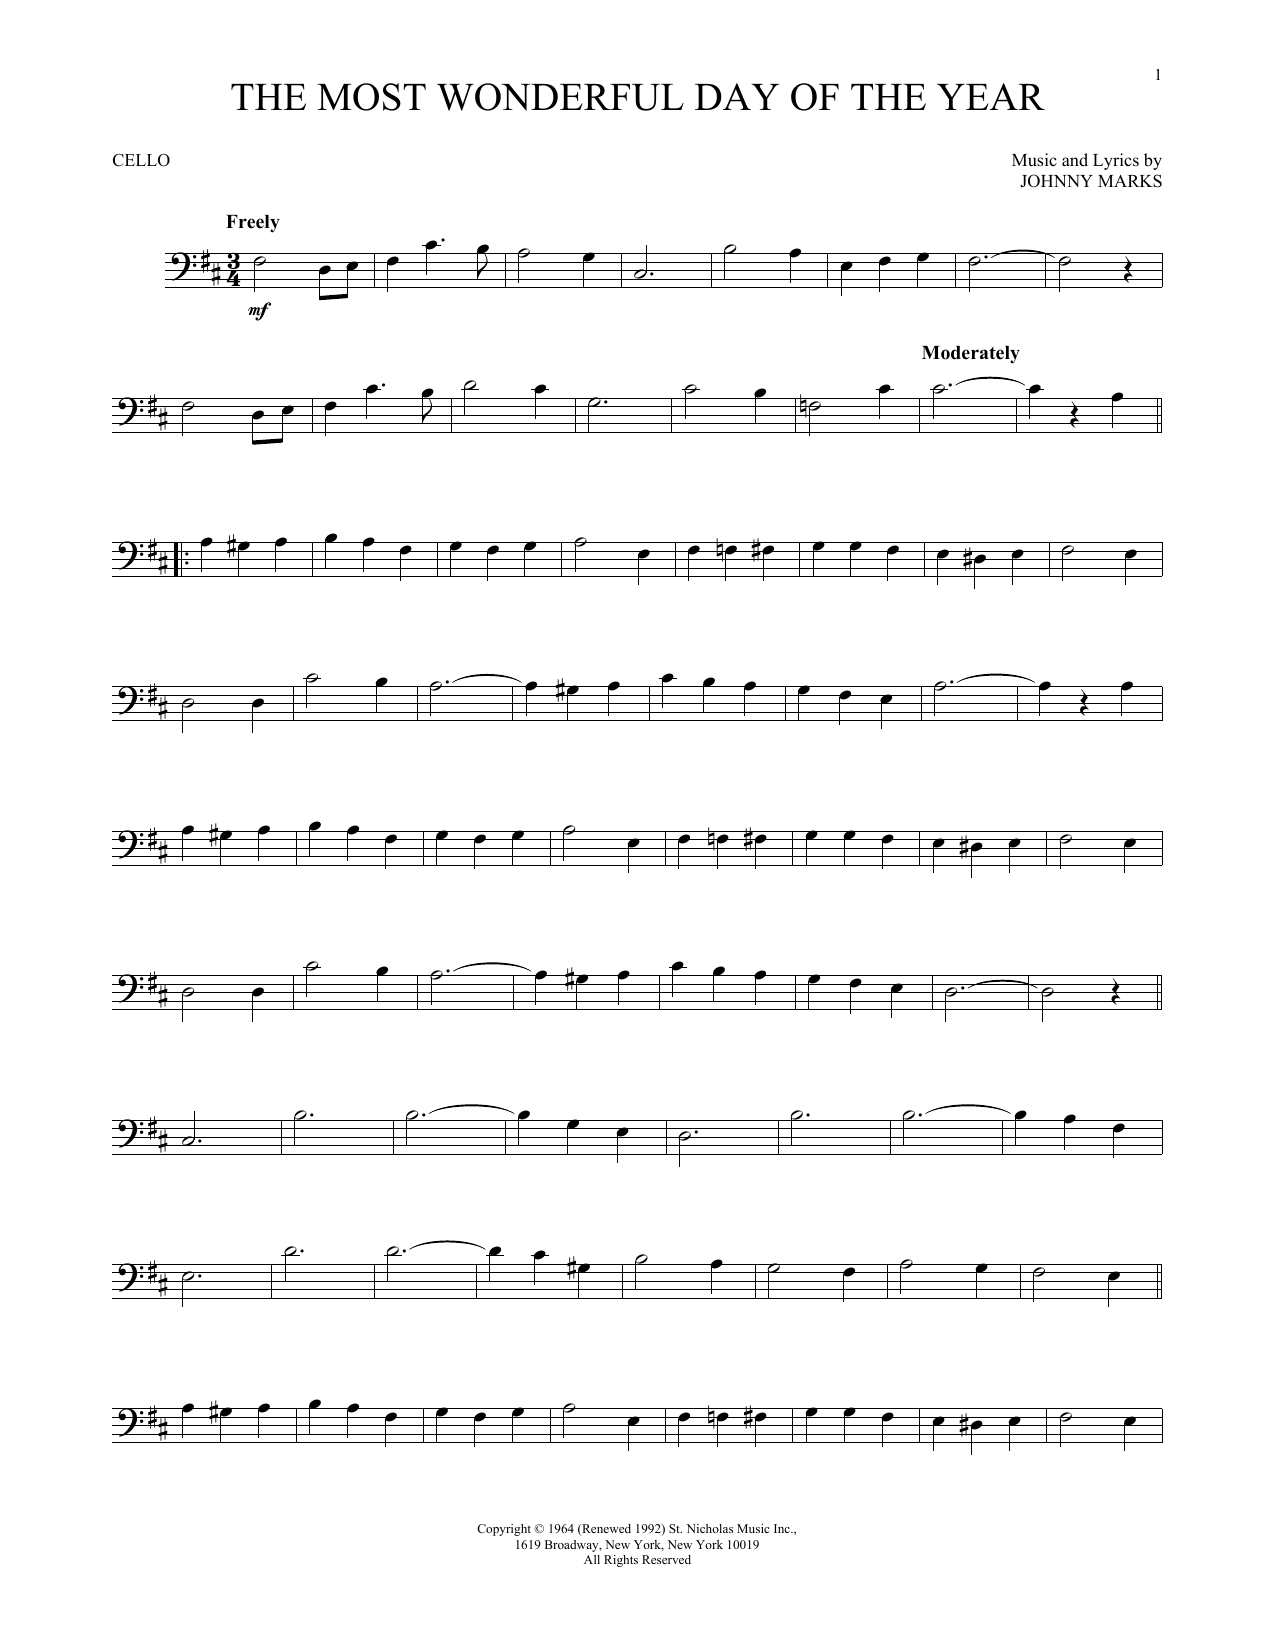 The Most Wonderful Day Of The Year (Cello Solo)